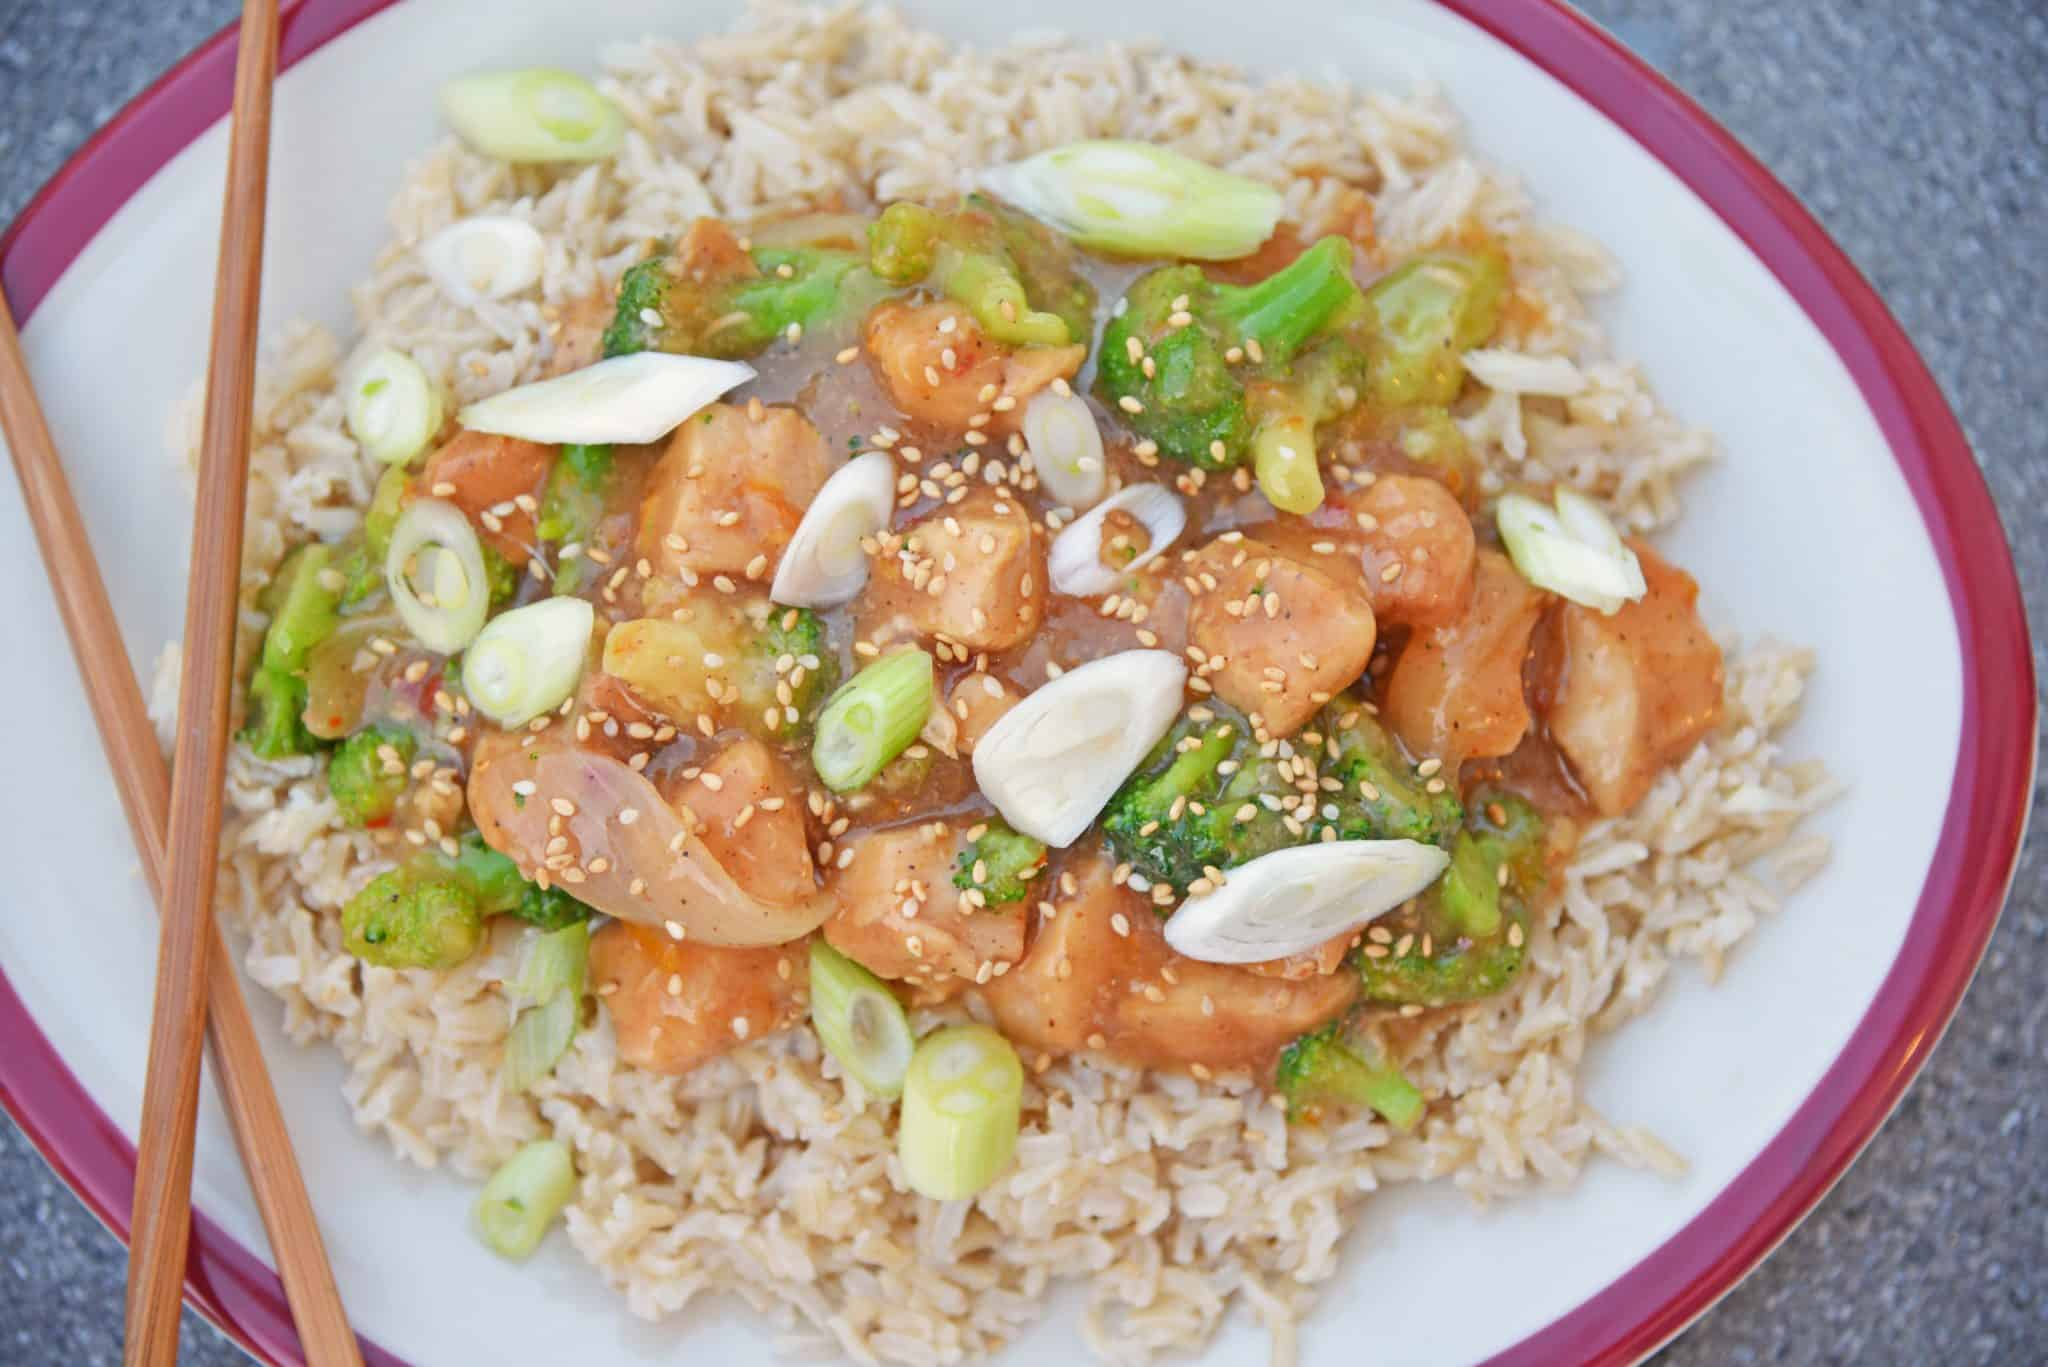 This Slow Cooker Orange Chicken Recipe creates a healthier version of the Chinese delivery dish right at home in your slow cooker! #orangechickenrecipe #crockpotorangechicken www.savoryexperiments.com